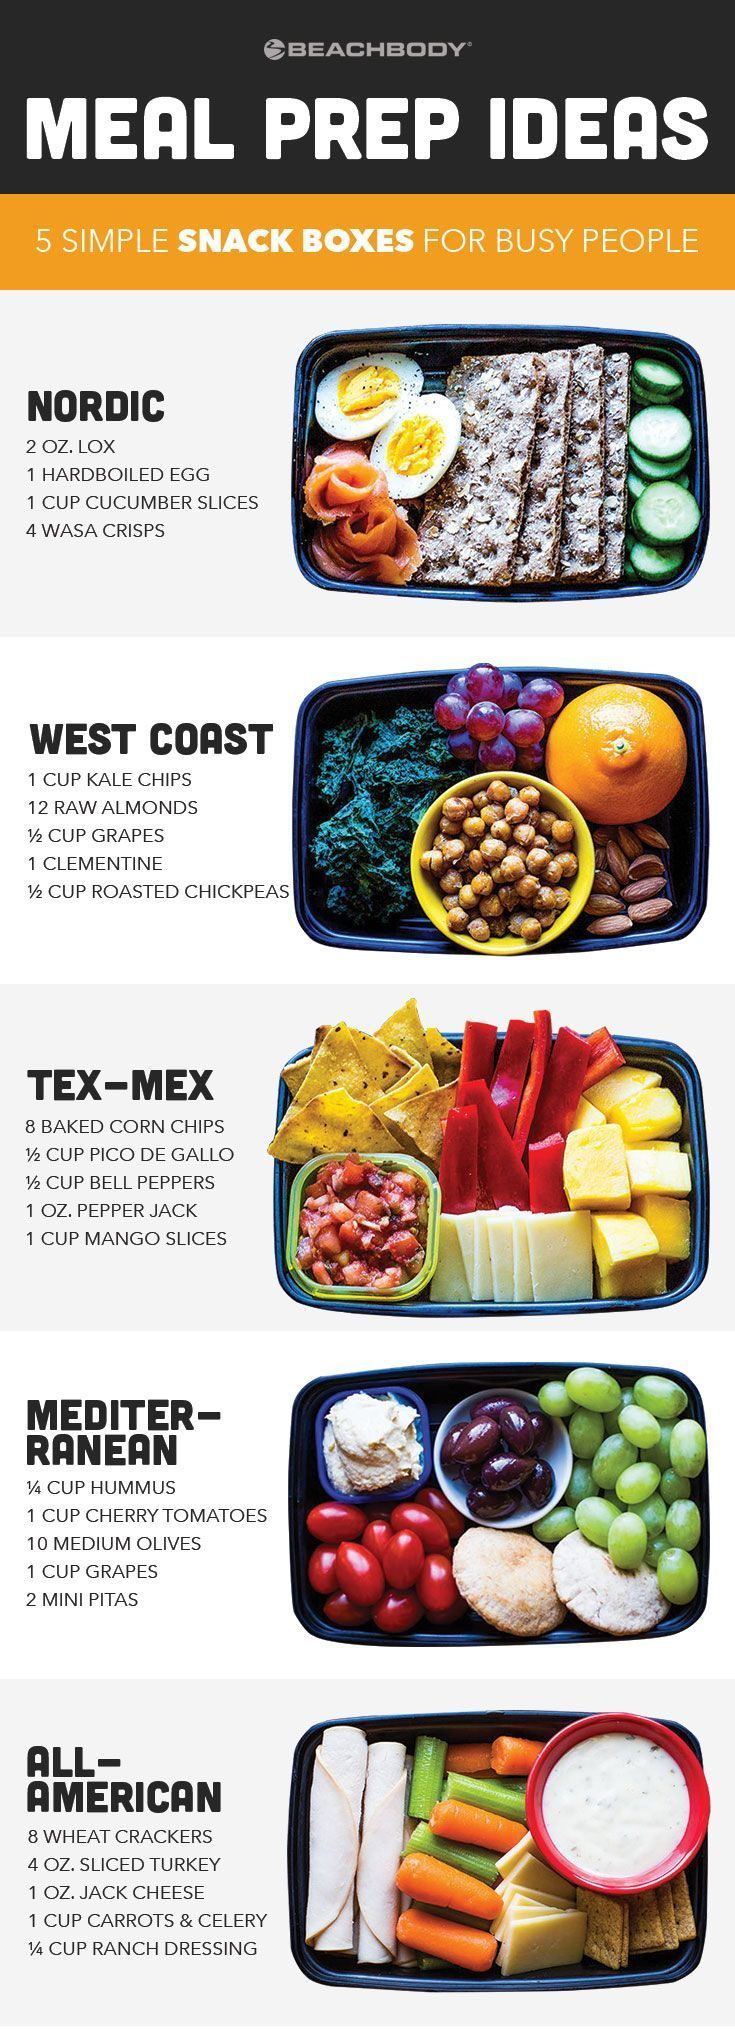 5 Simple Snack Boxes for Busy People #healthyeating